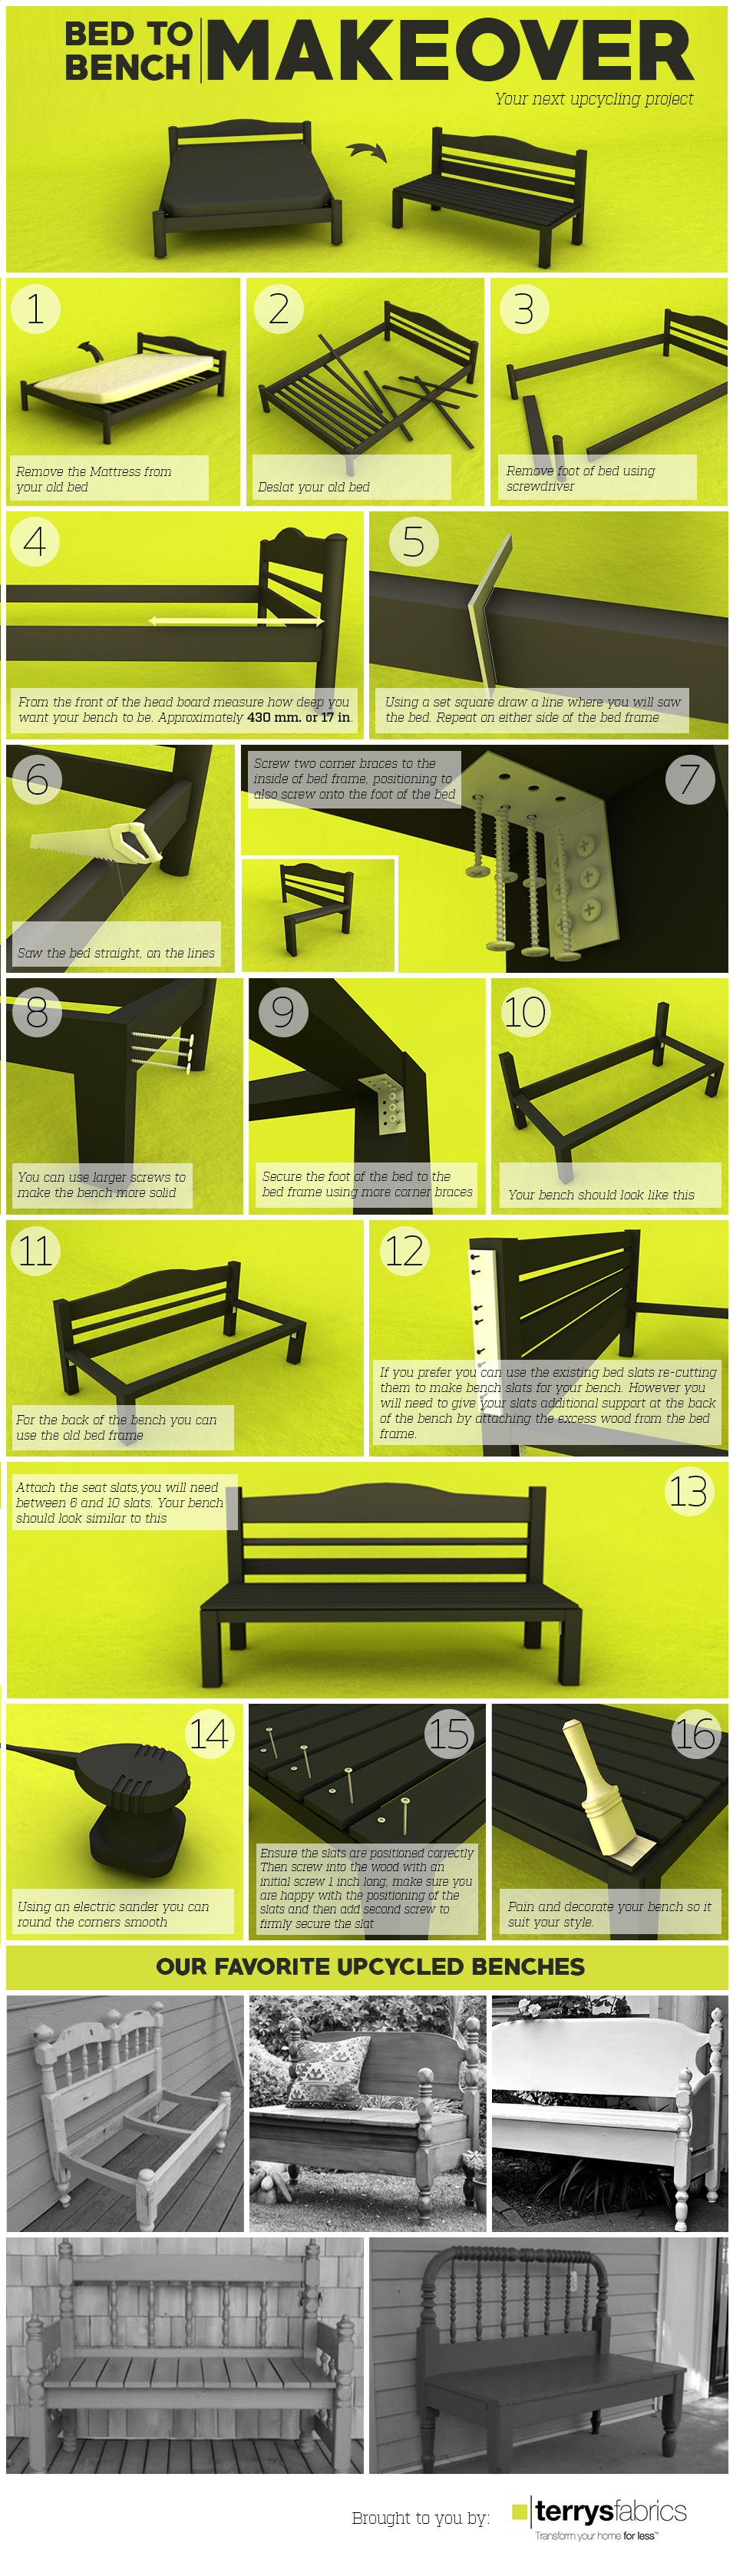 DIY-bed-to-bench-Instructions